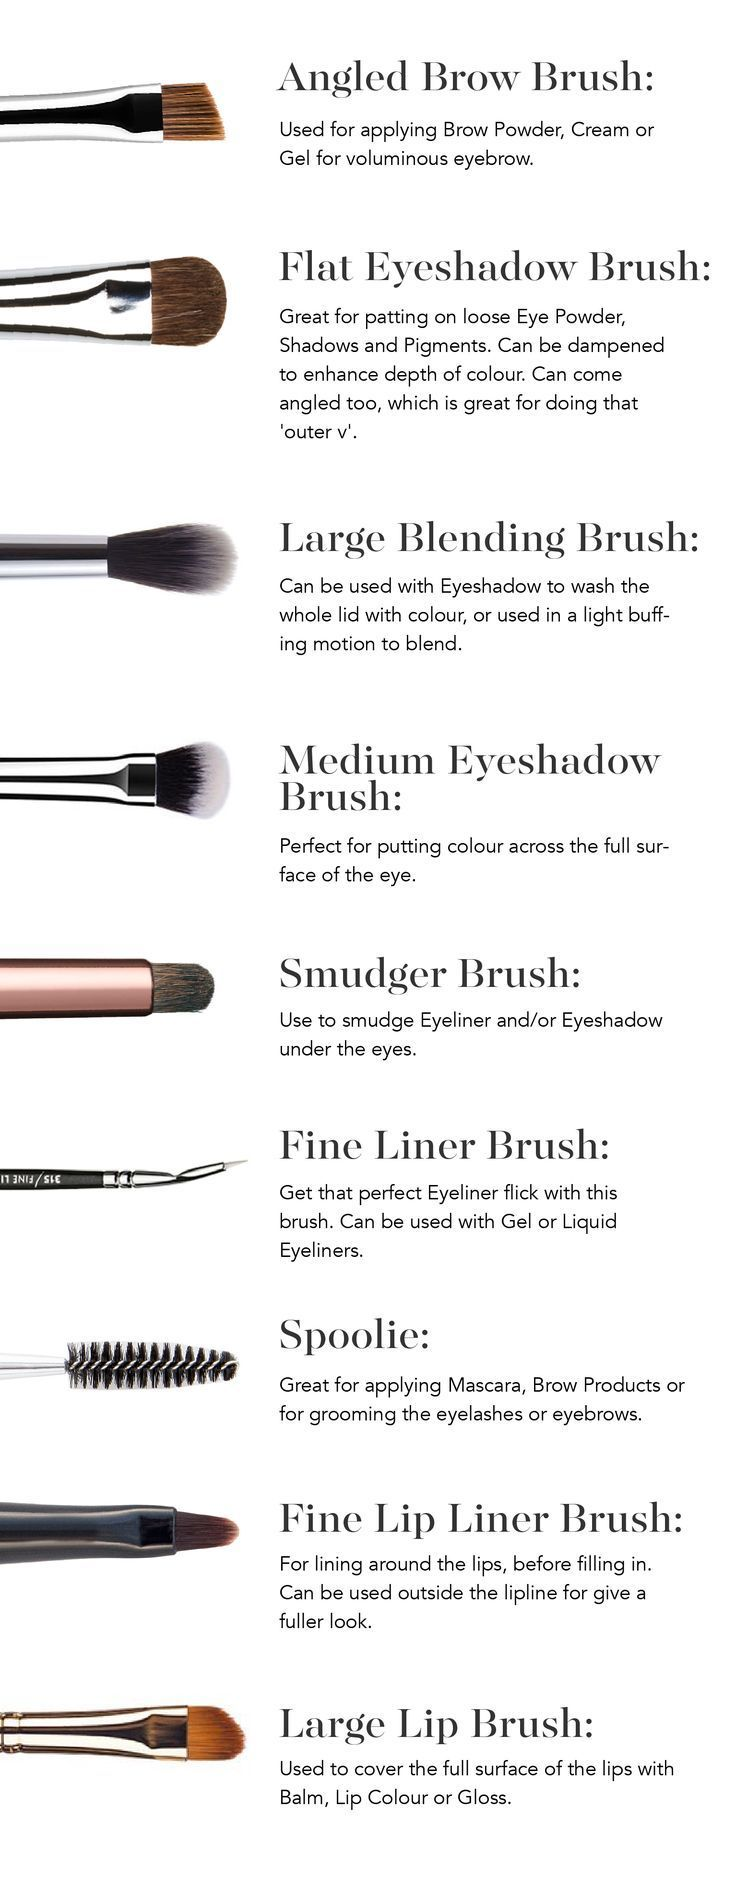 Makeup Brushes (And How To Use Them)